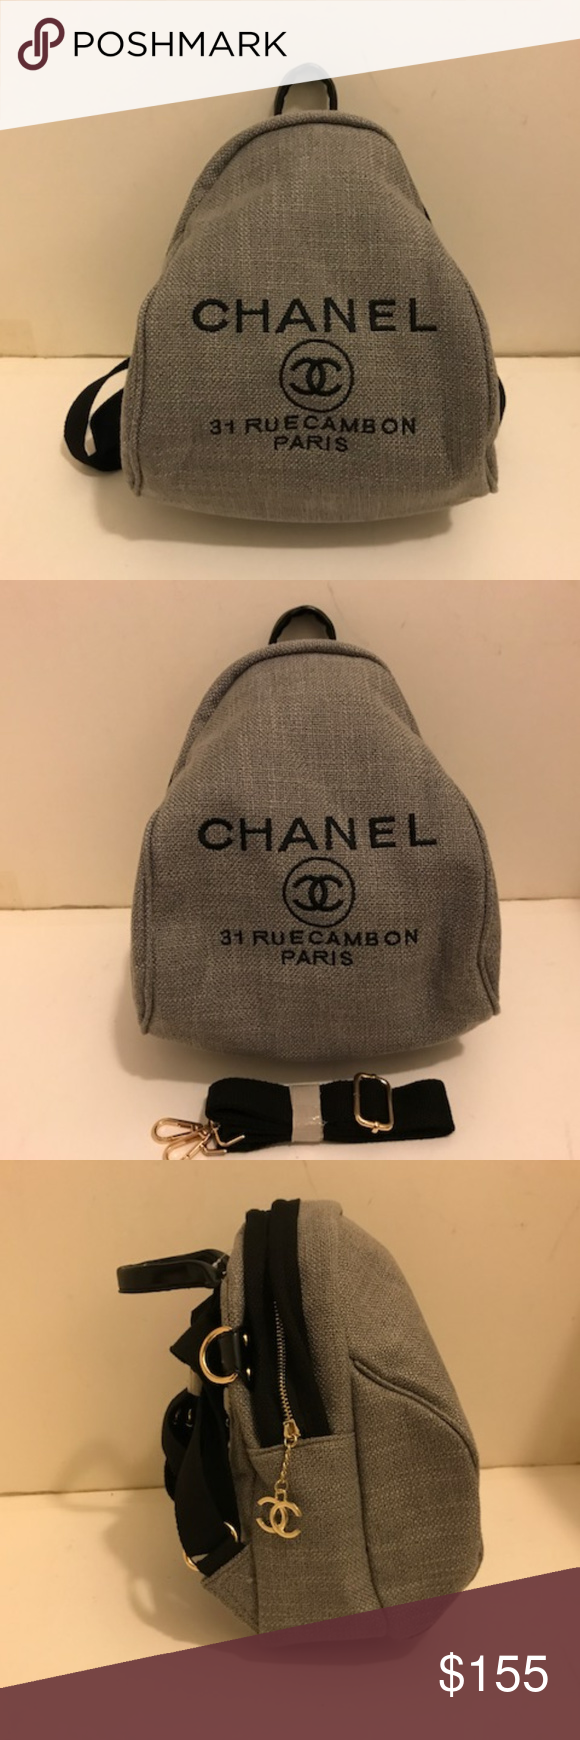 e3525b4a7f4b1d Chanel VIP gift Bag Cross Body Bag Backpack Gray 100 % Authentic Chanel VIP  gift Canvas